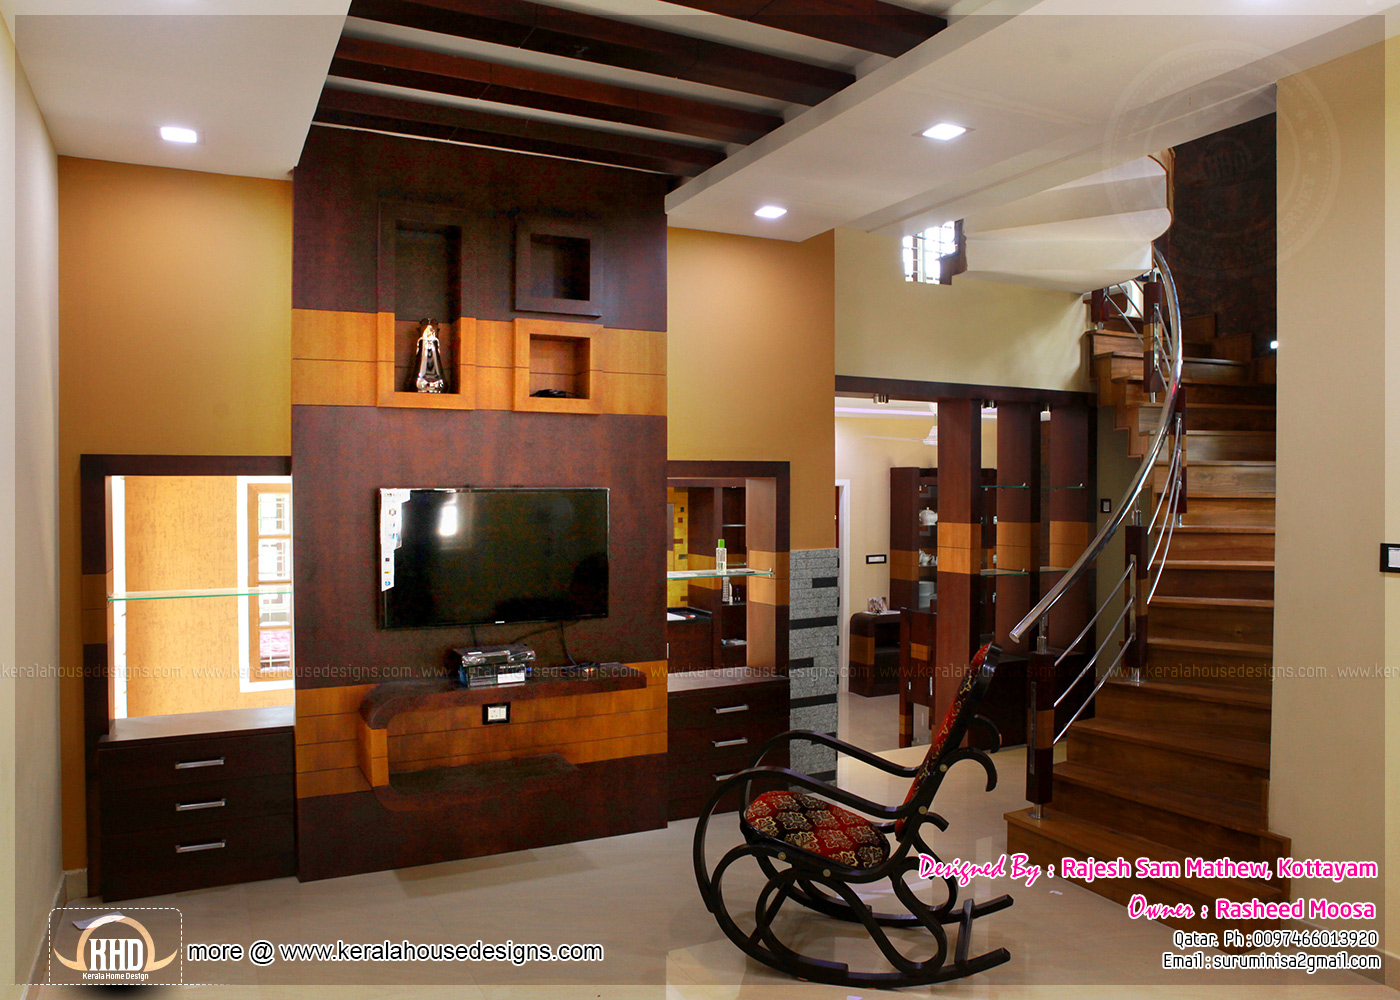 Kerala interior design with photos kerala home design for Dining room ideas kerala